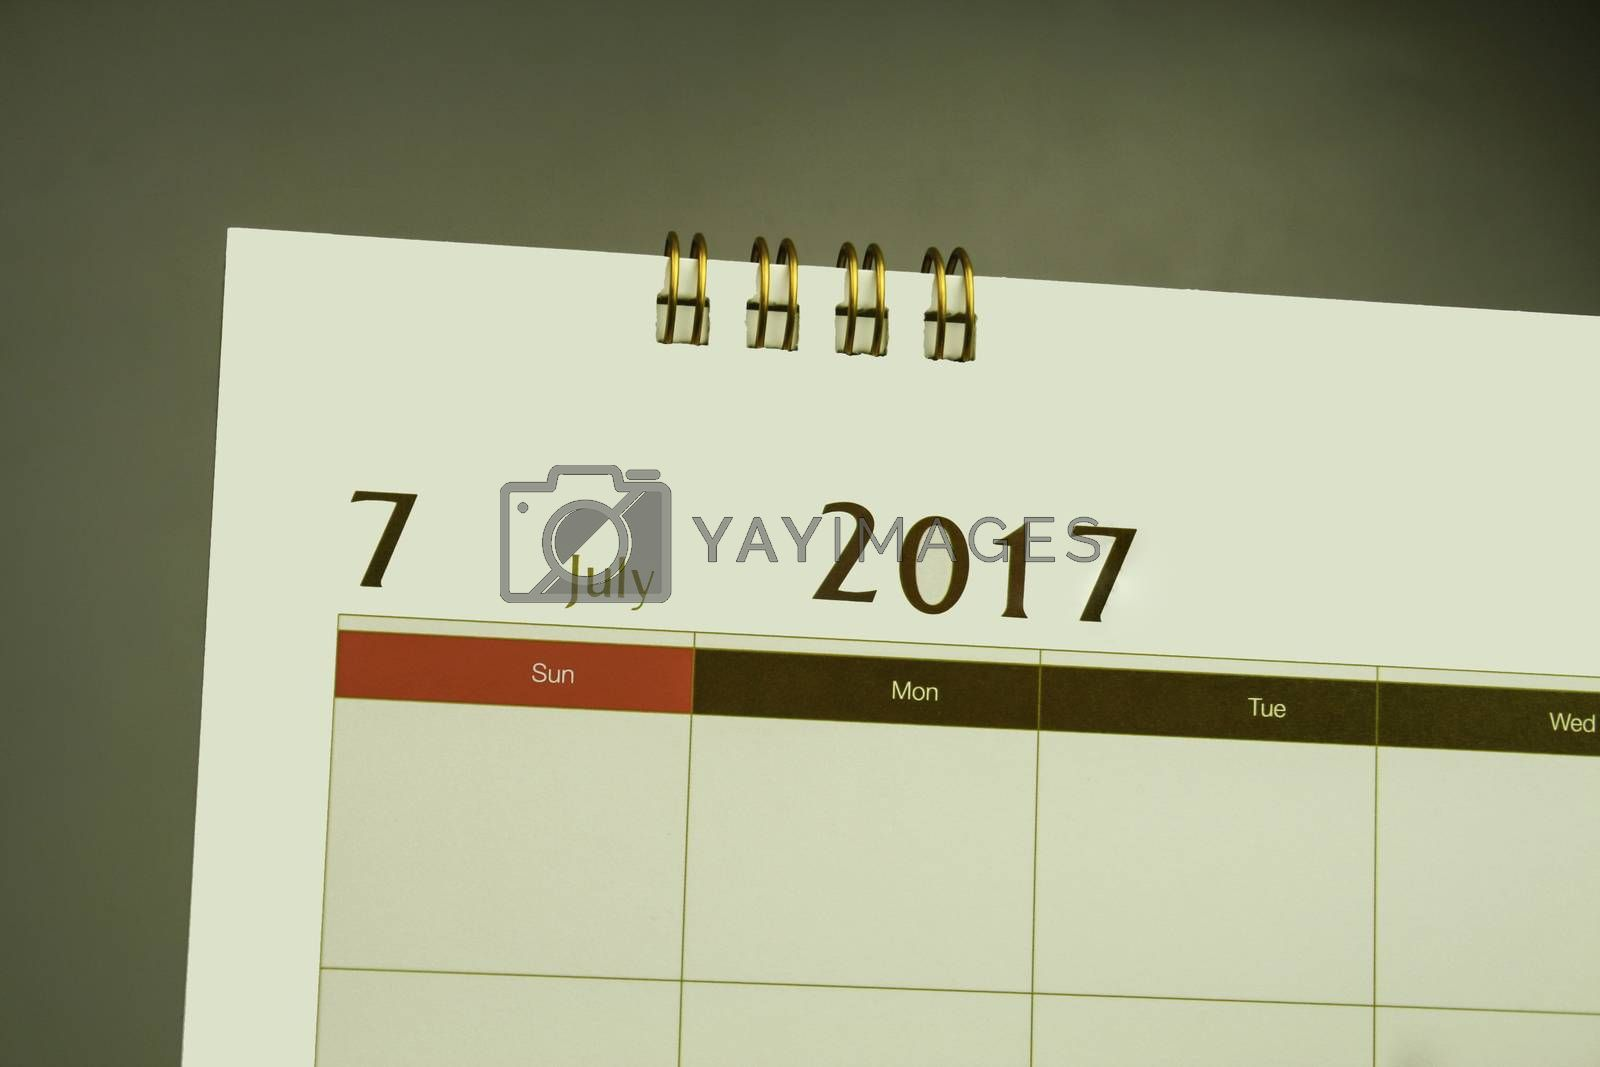 Calendar page of month 2016